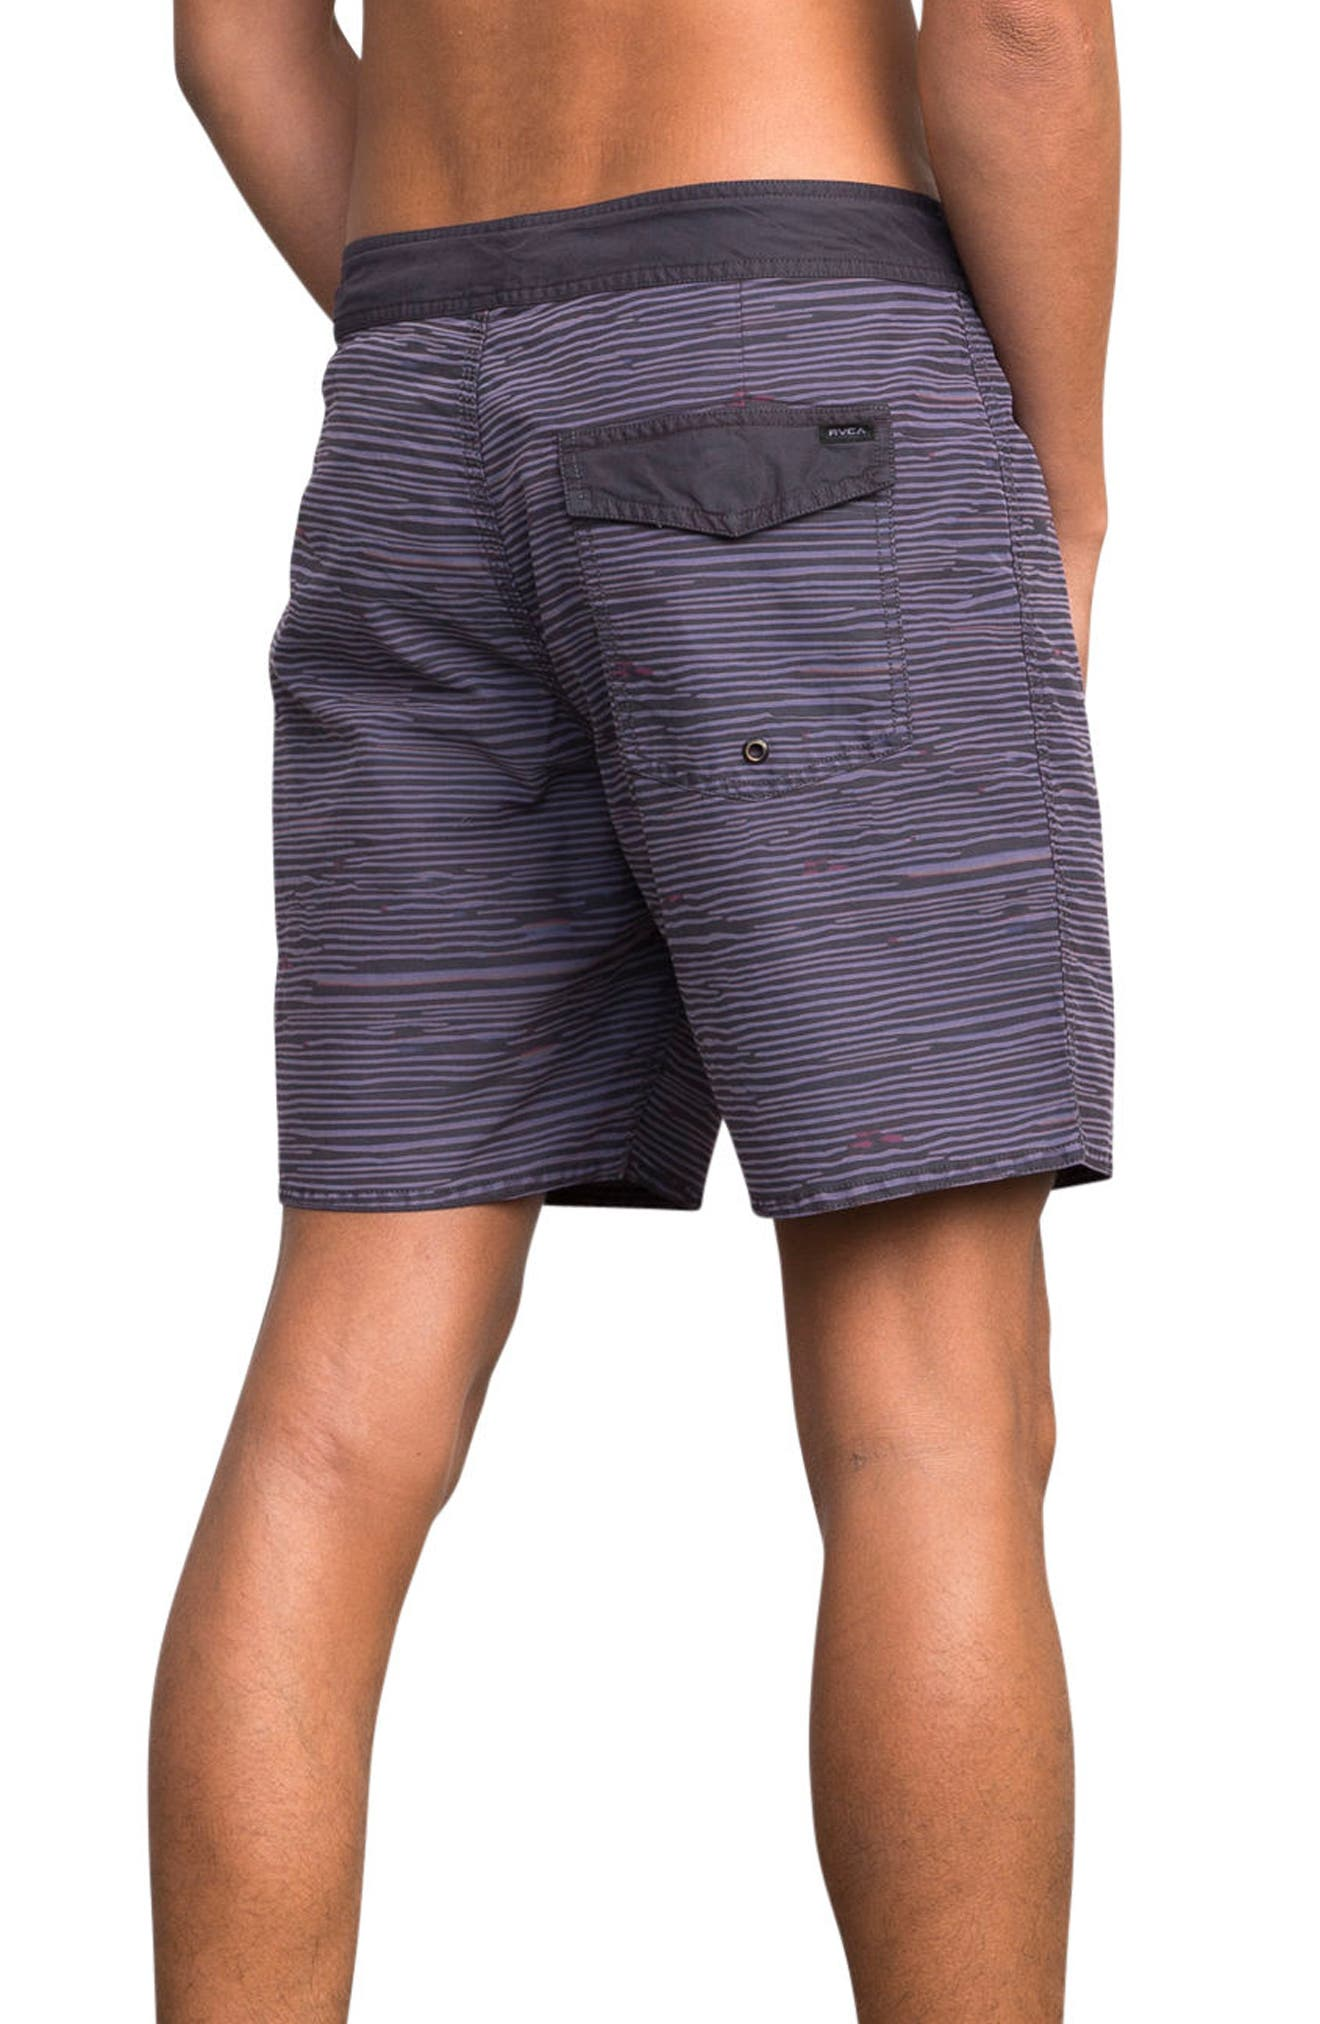 Flinch Board Shorts,                             Alternate thumbnail 3, color,                             Dark Purple